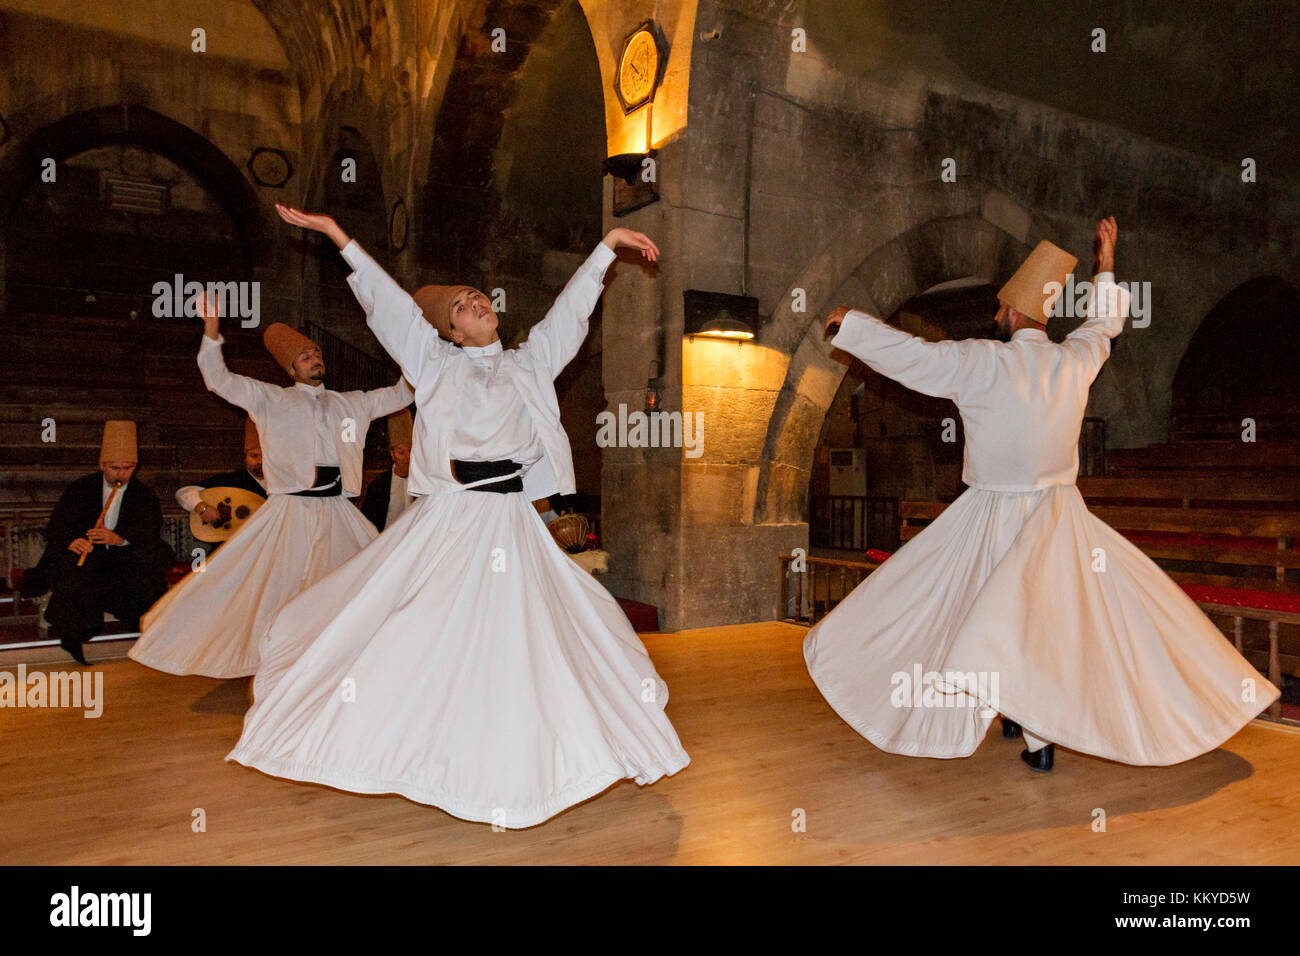 Whirling dervishes performing in an old caravansary in Nevsehir, Turkey. - Stock Image